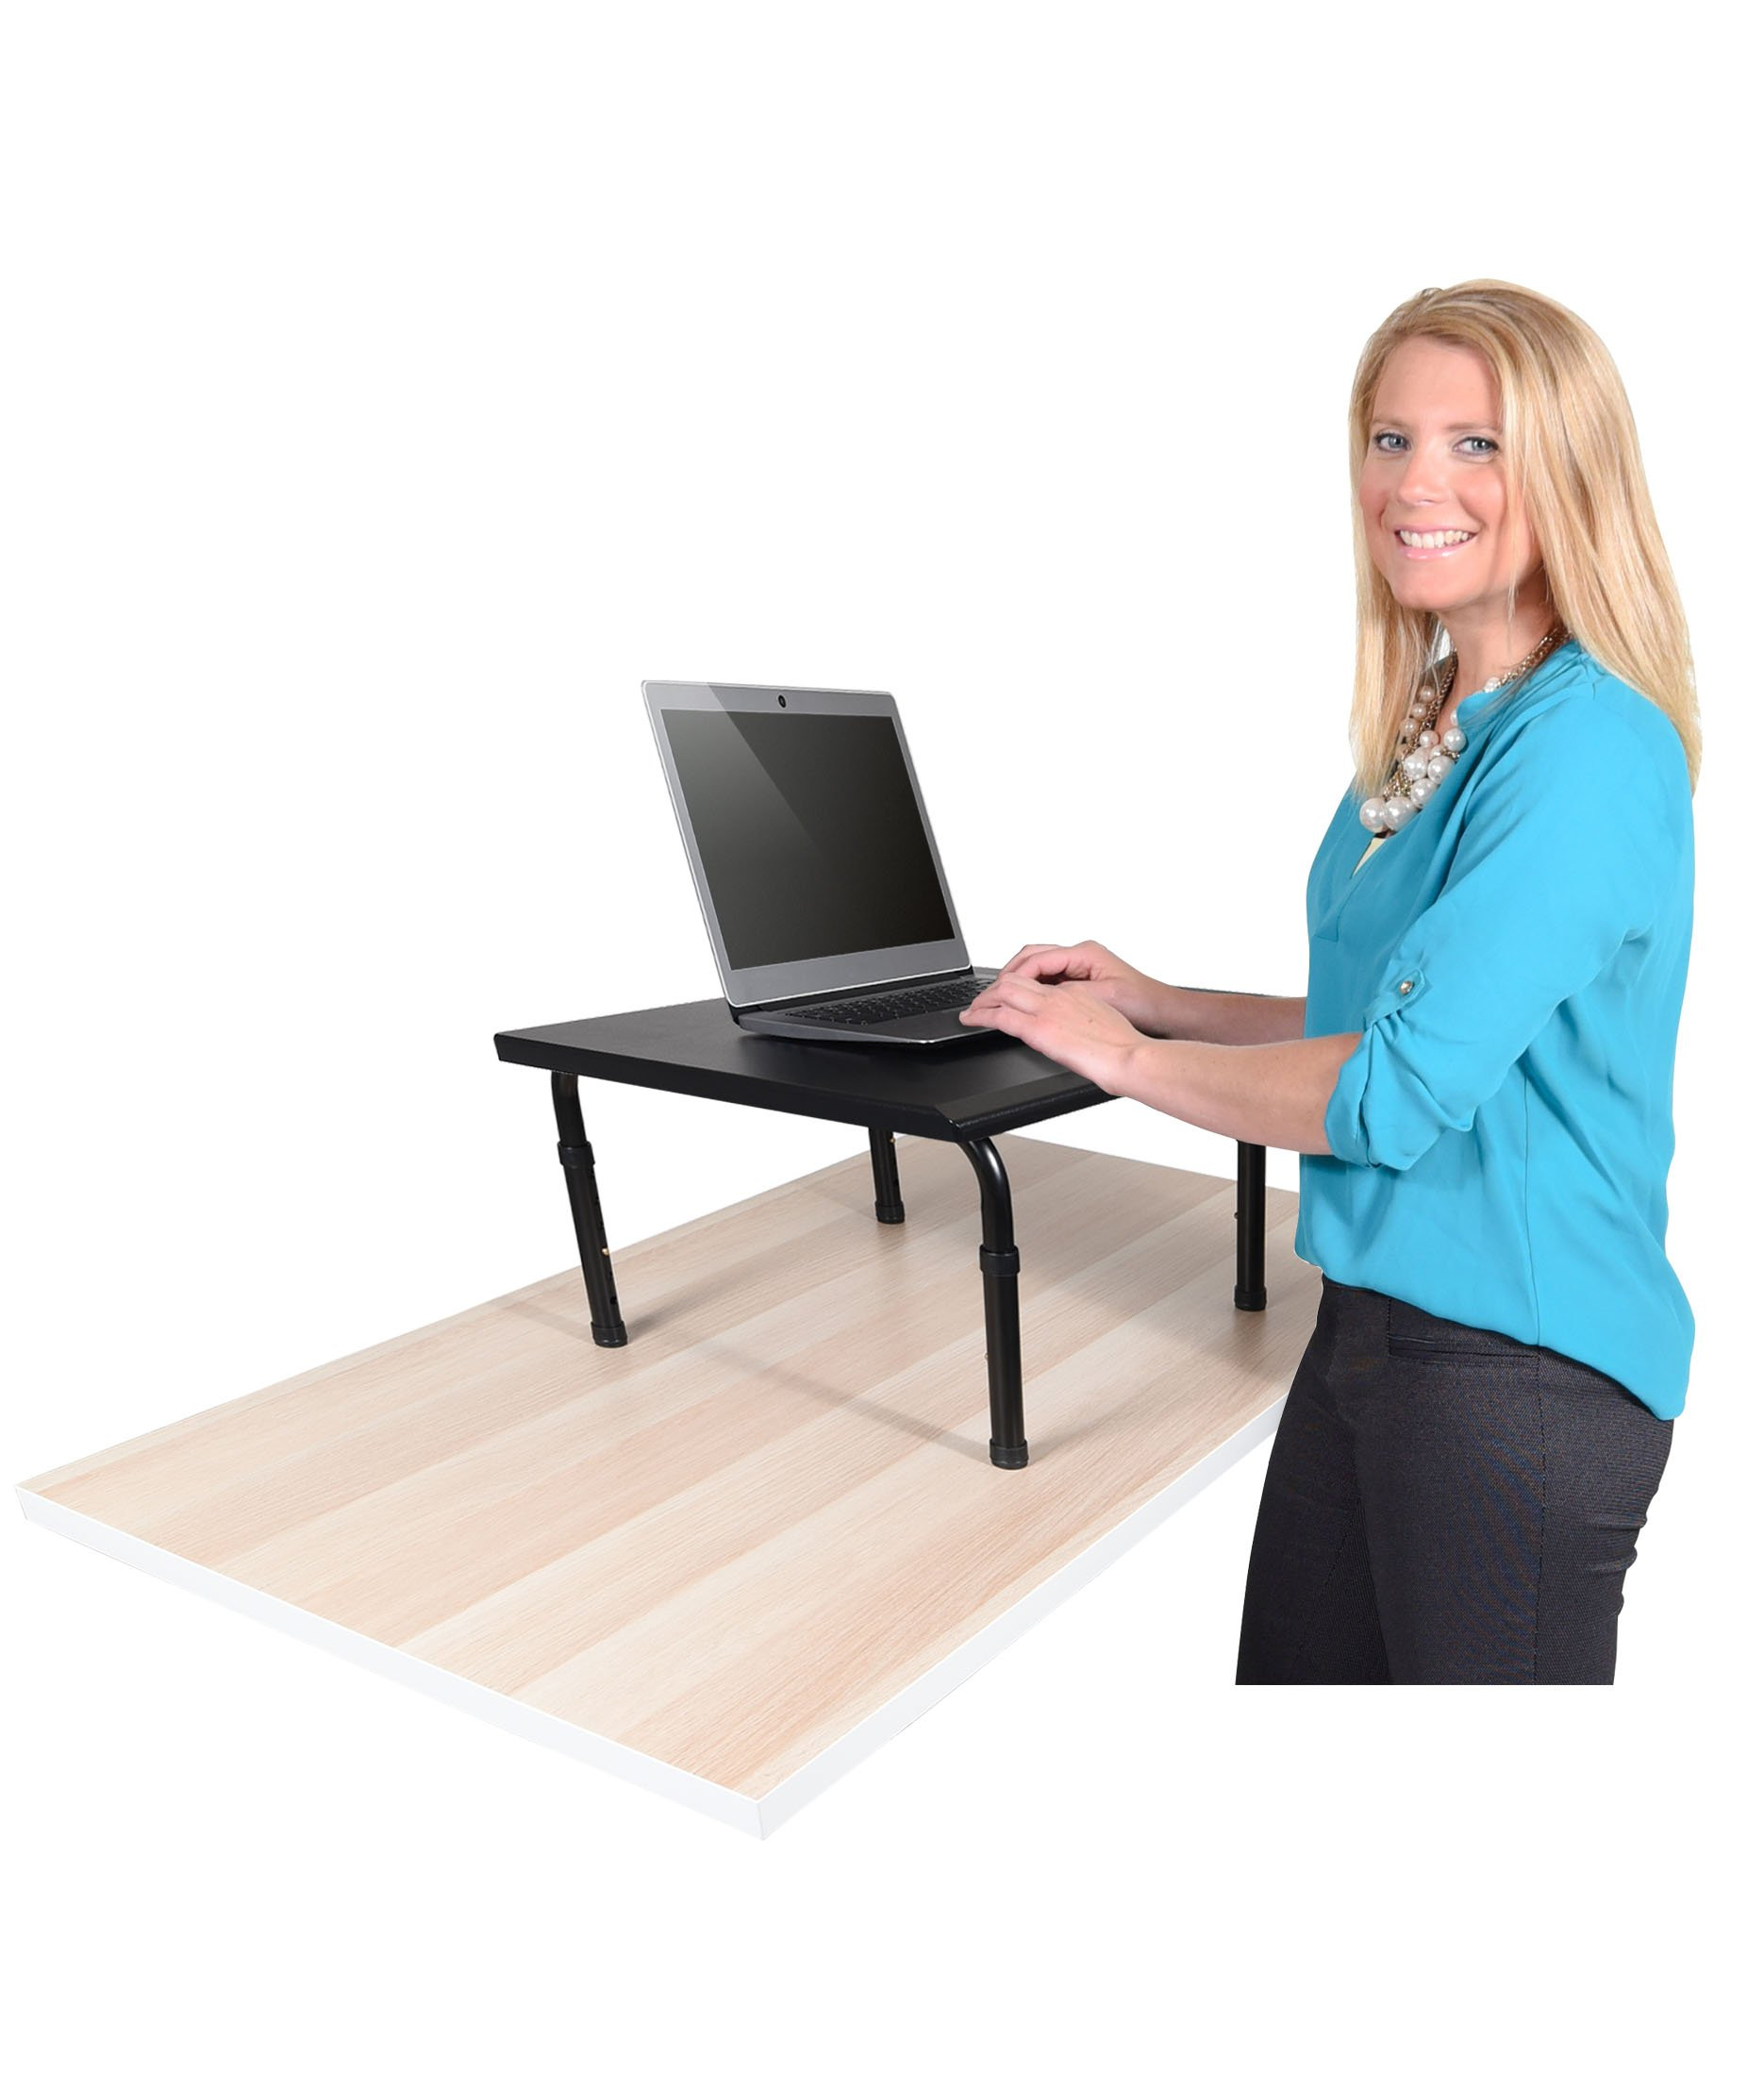 Adjustable height standing desk. Convert your desk to a standing desk